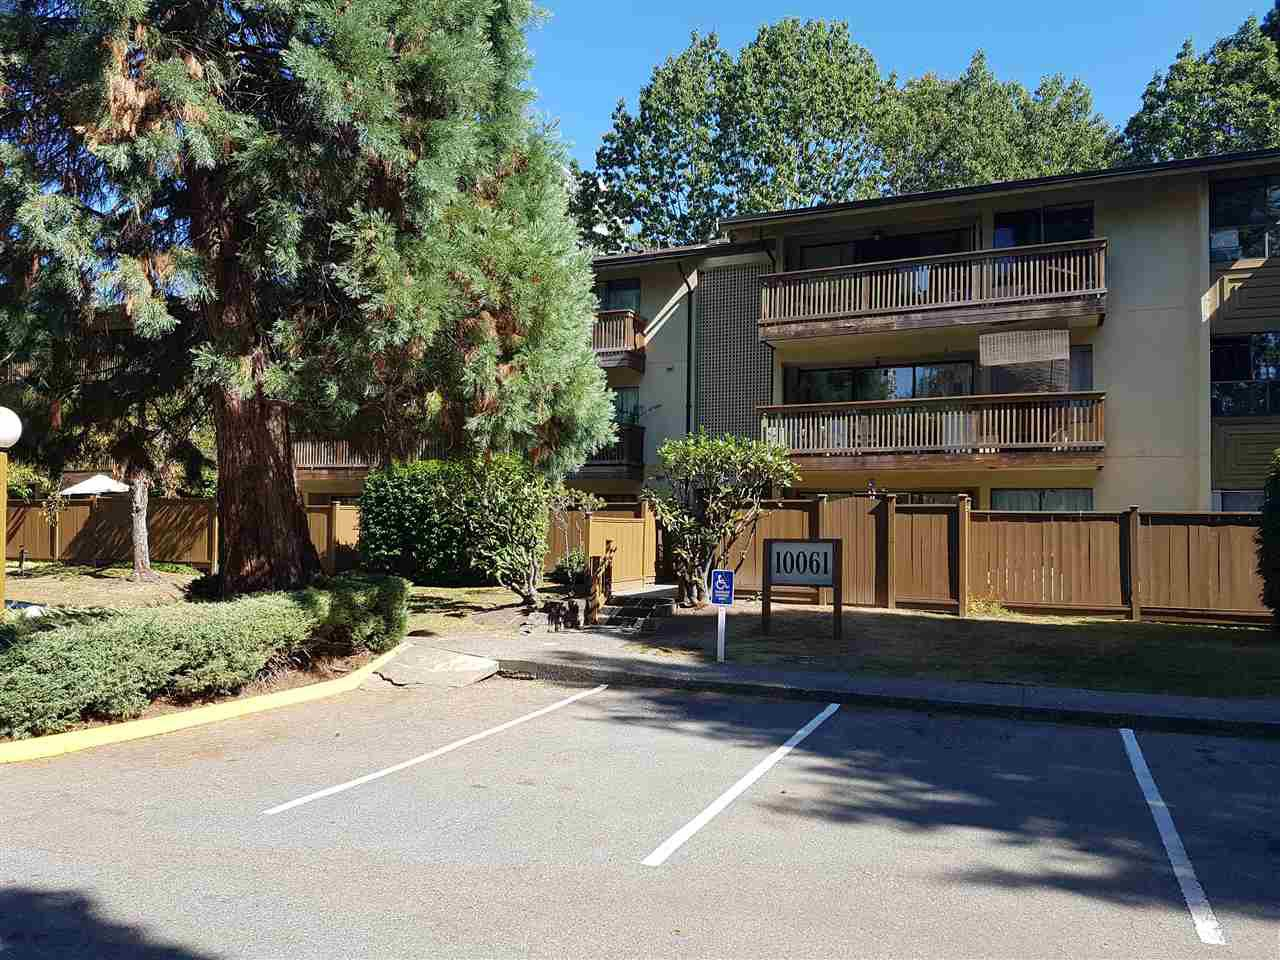 "Main Photo: 310 10061 150TH Street in Surrey: Guildford Condo for sale in ""forest manor"" (North Surrey)  : MLS®# R2206129"